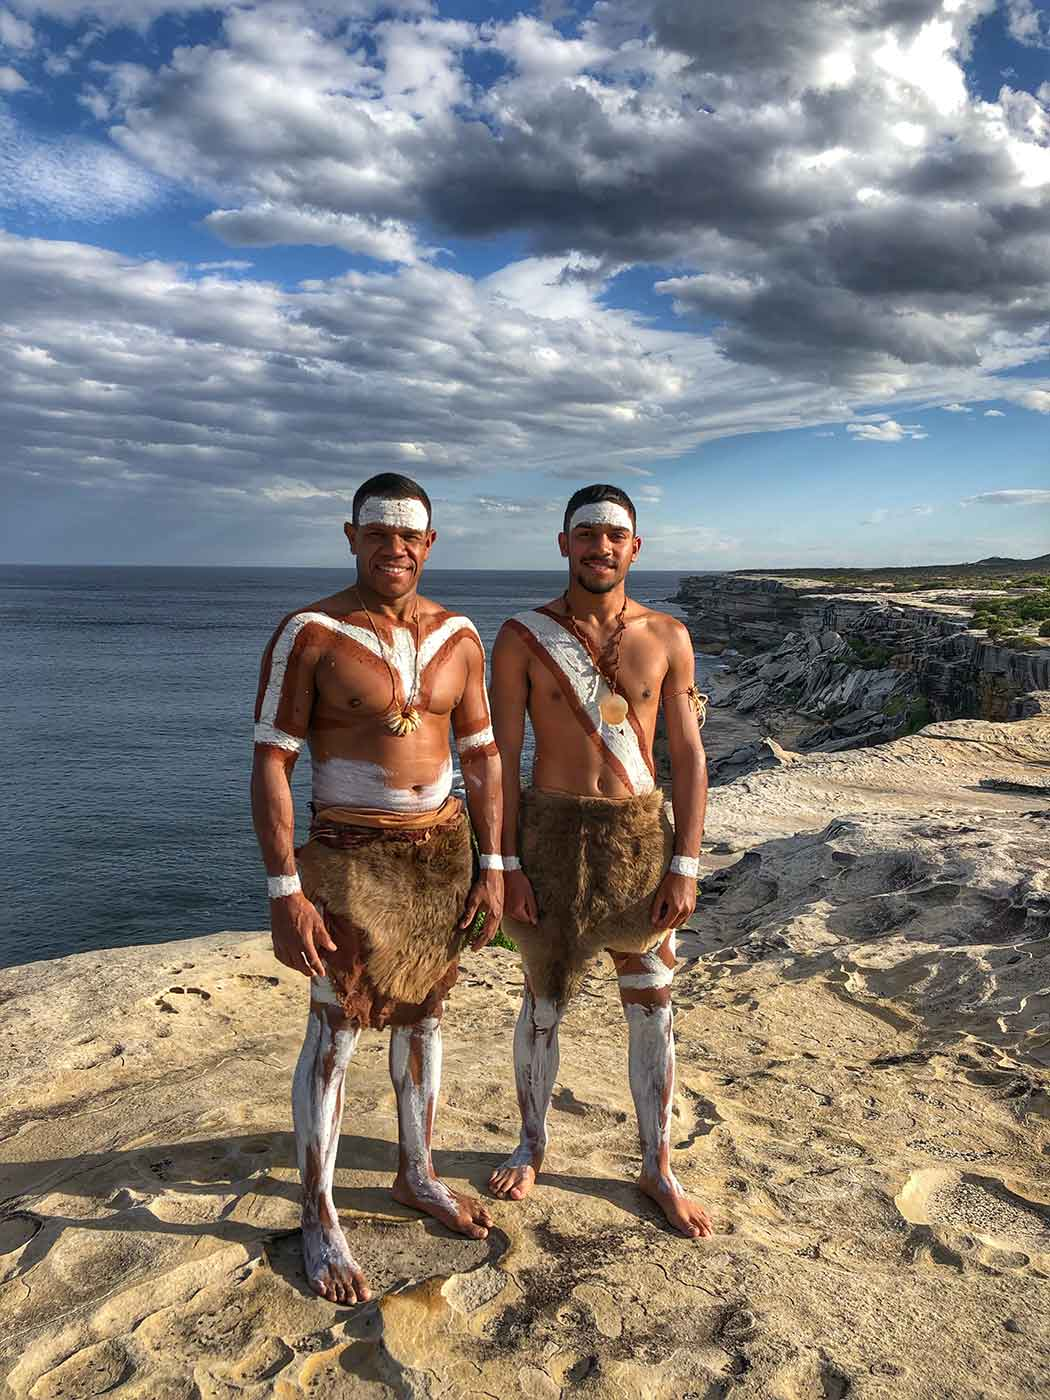 Two young men stand atop rocks overlooking the ocean. They wear animal skins and white body paint. - click to view larger image